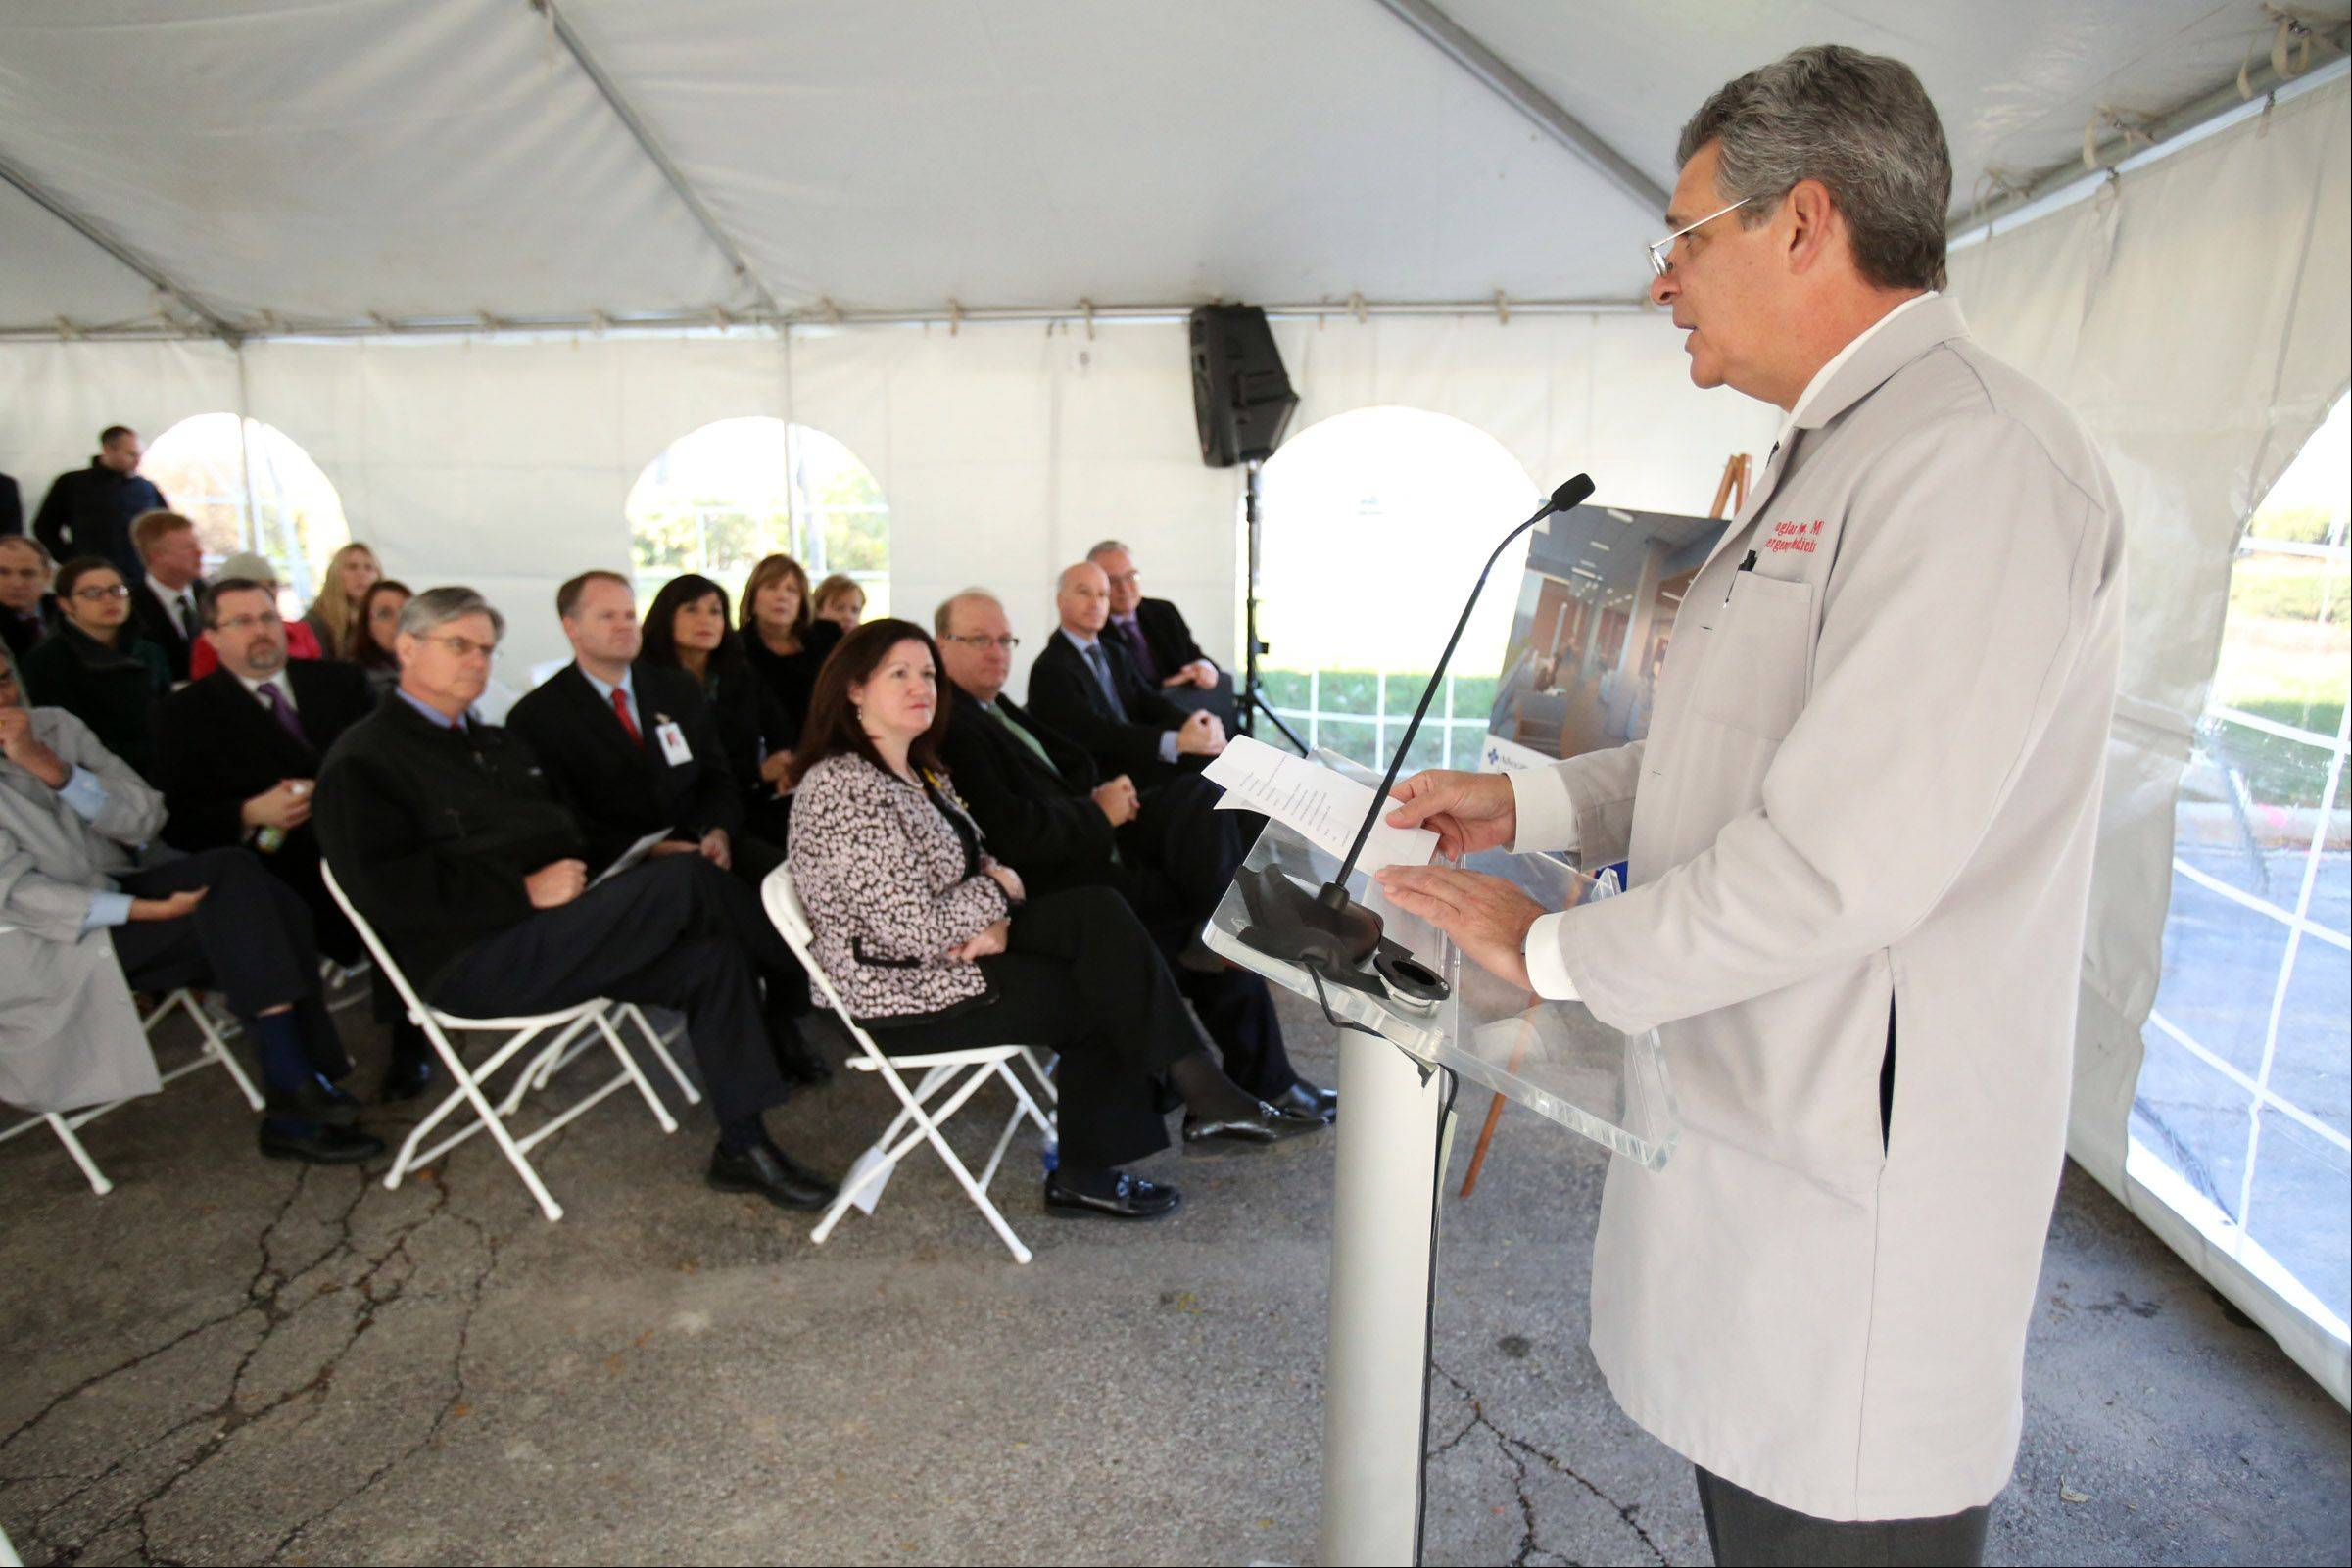 Douglas Propp, chairman of emergency medicine, speaks during the groundbreaking ceremony.